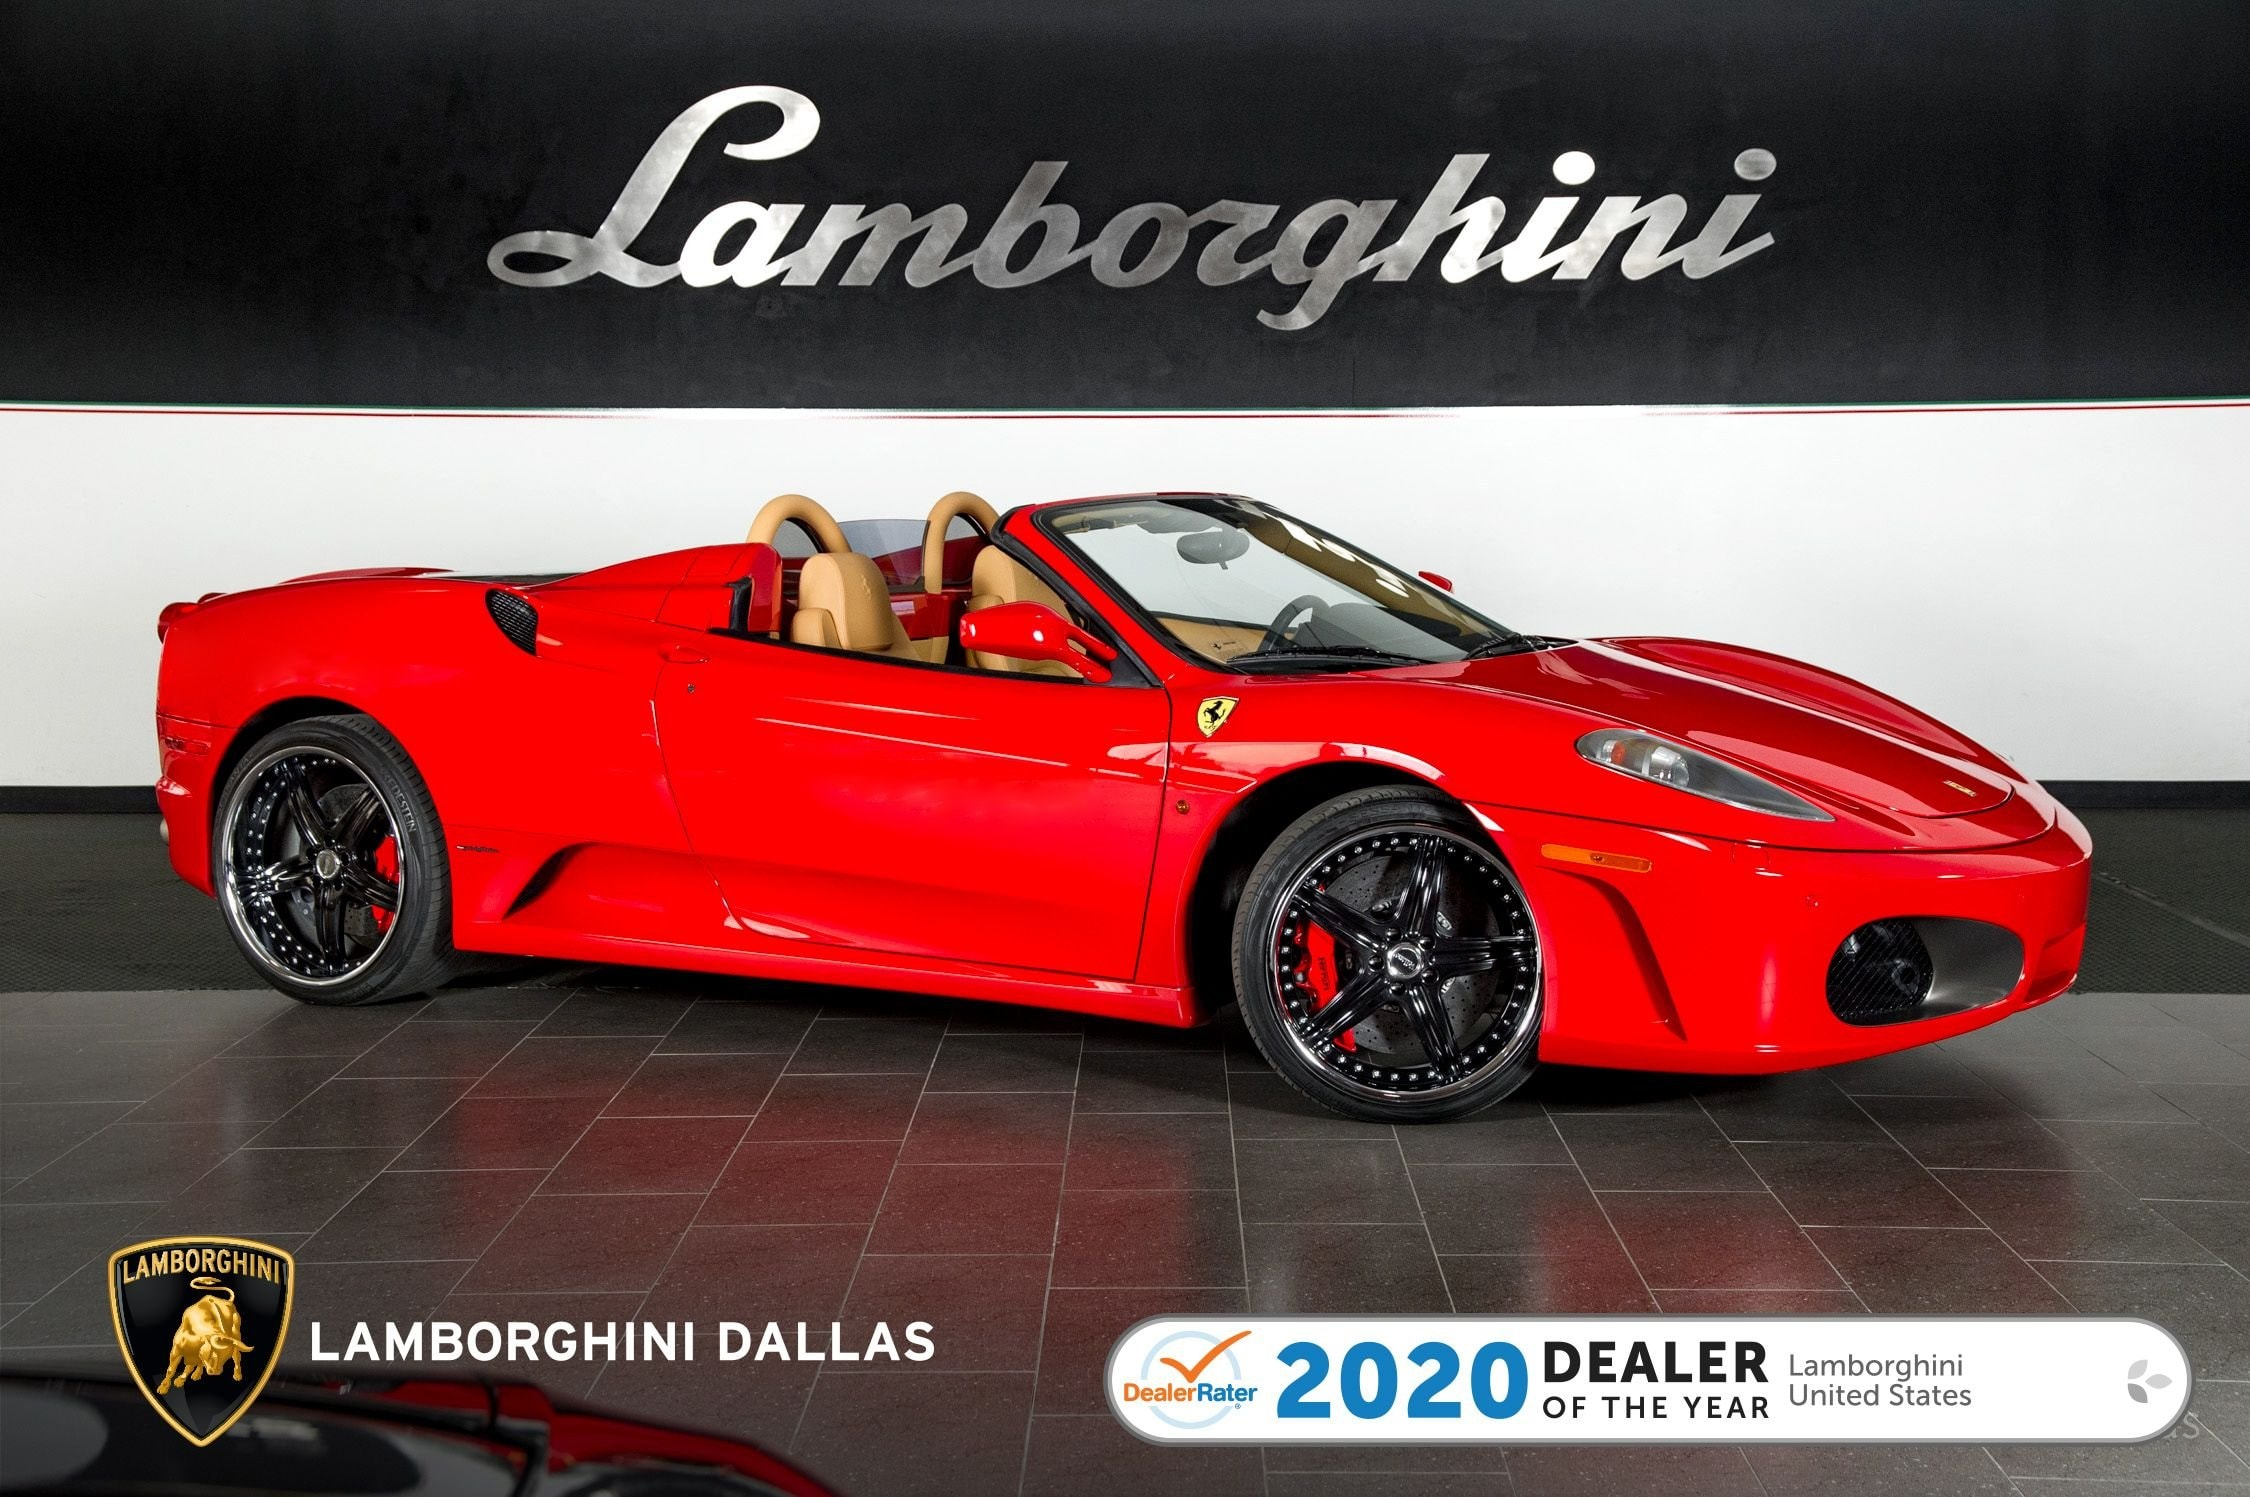 used 2007 Ferrari F430 Spider car, priced at $104,999